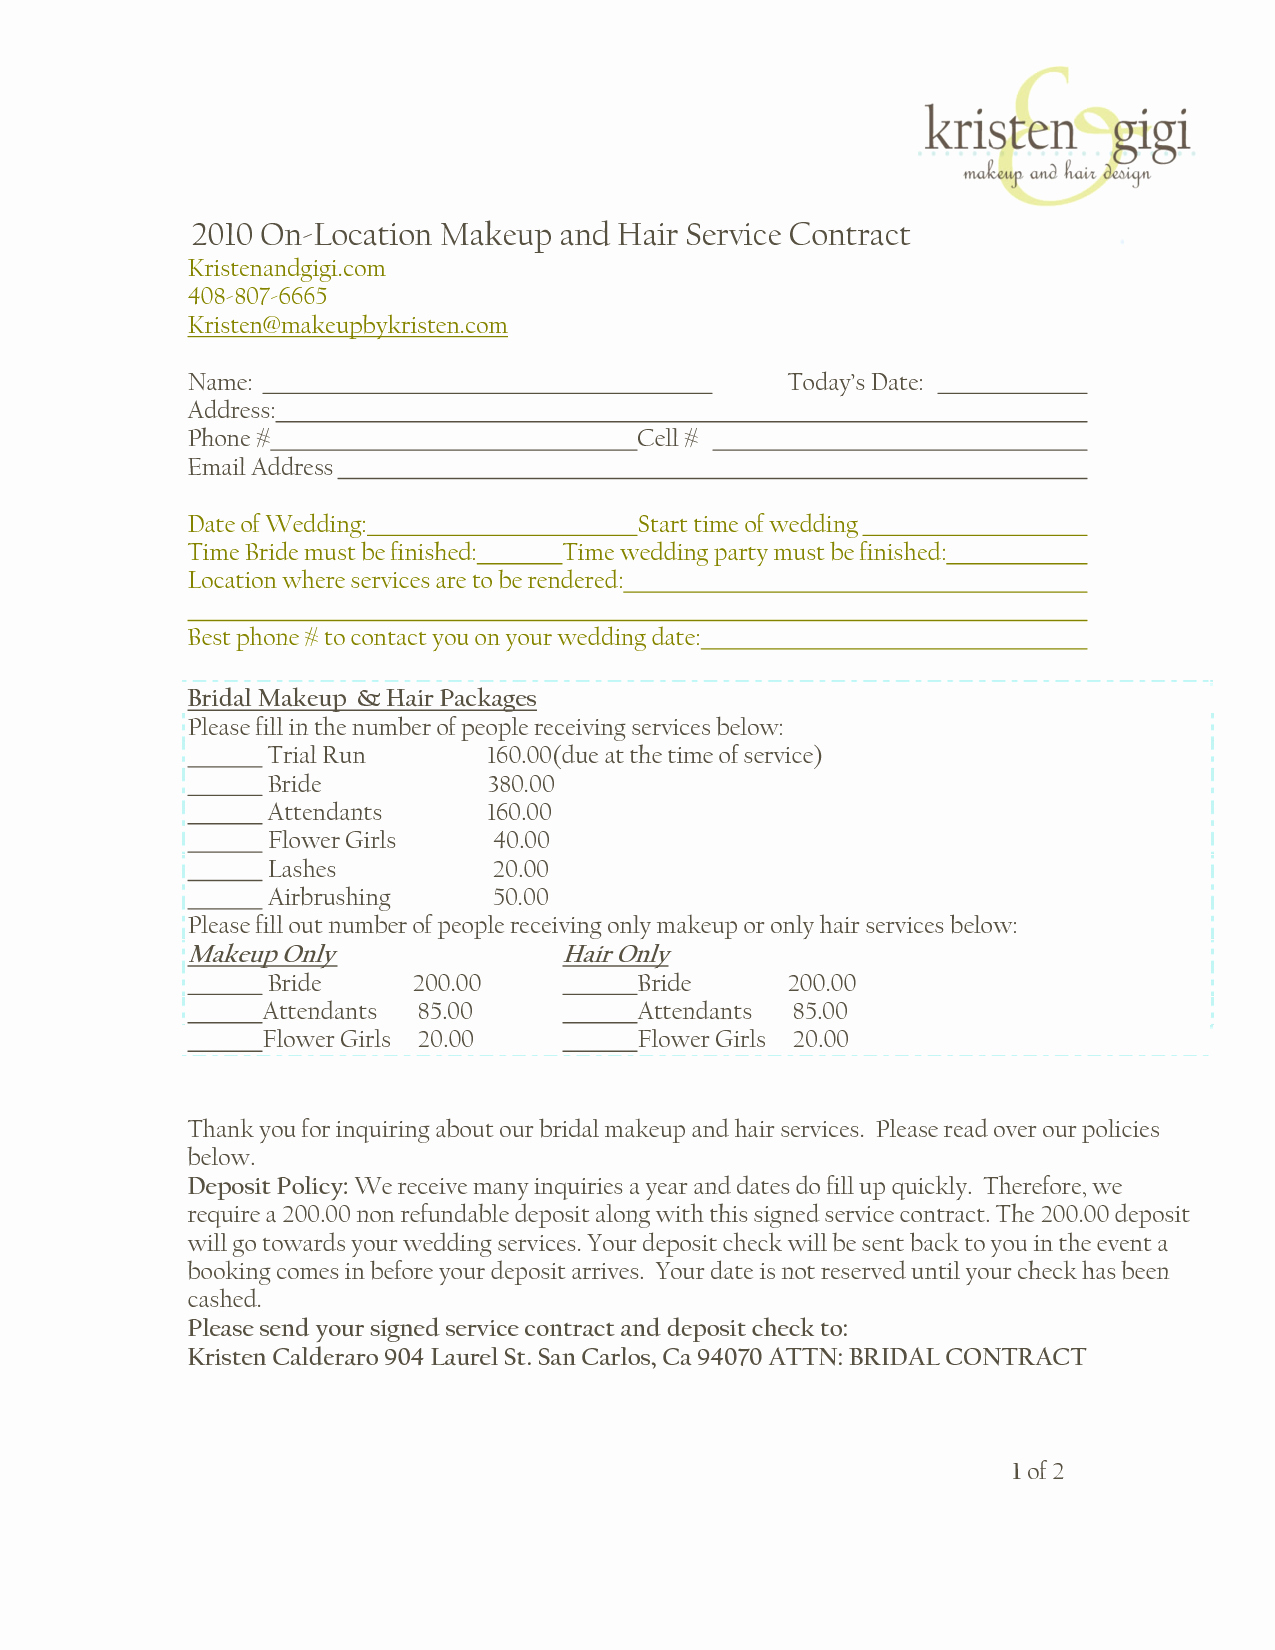 Freelance Makeup Contract Template New Bridalhaircotract